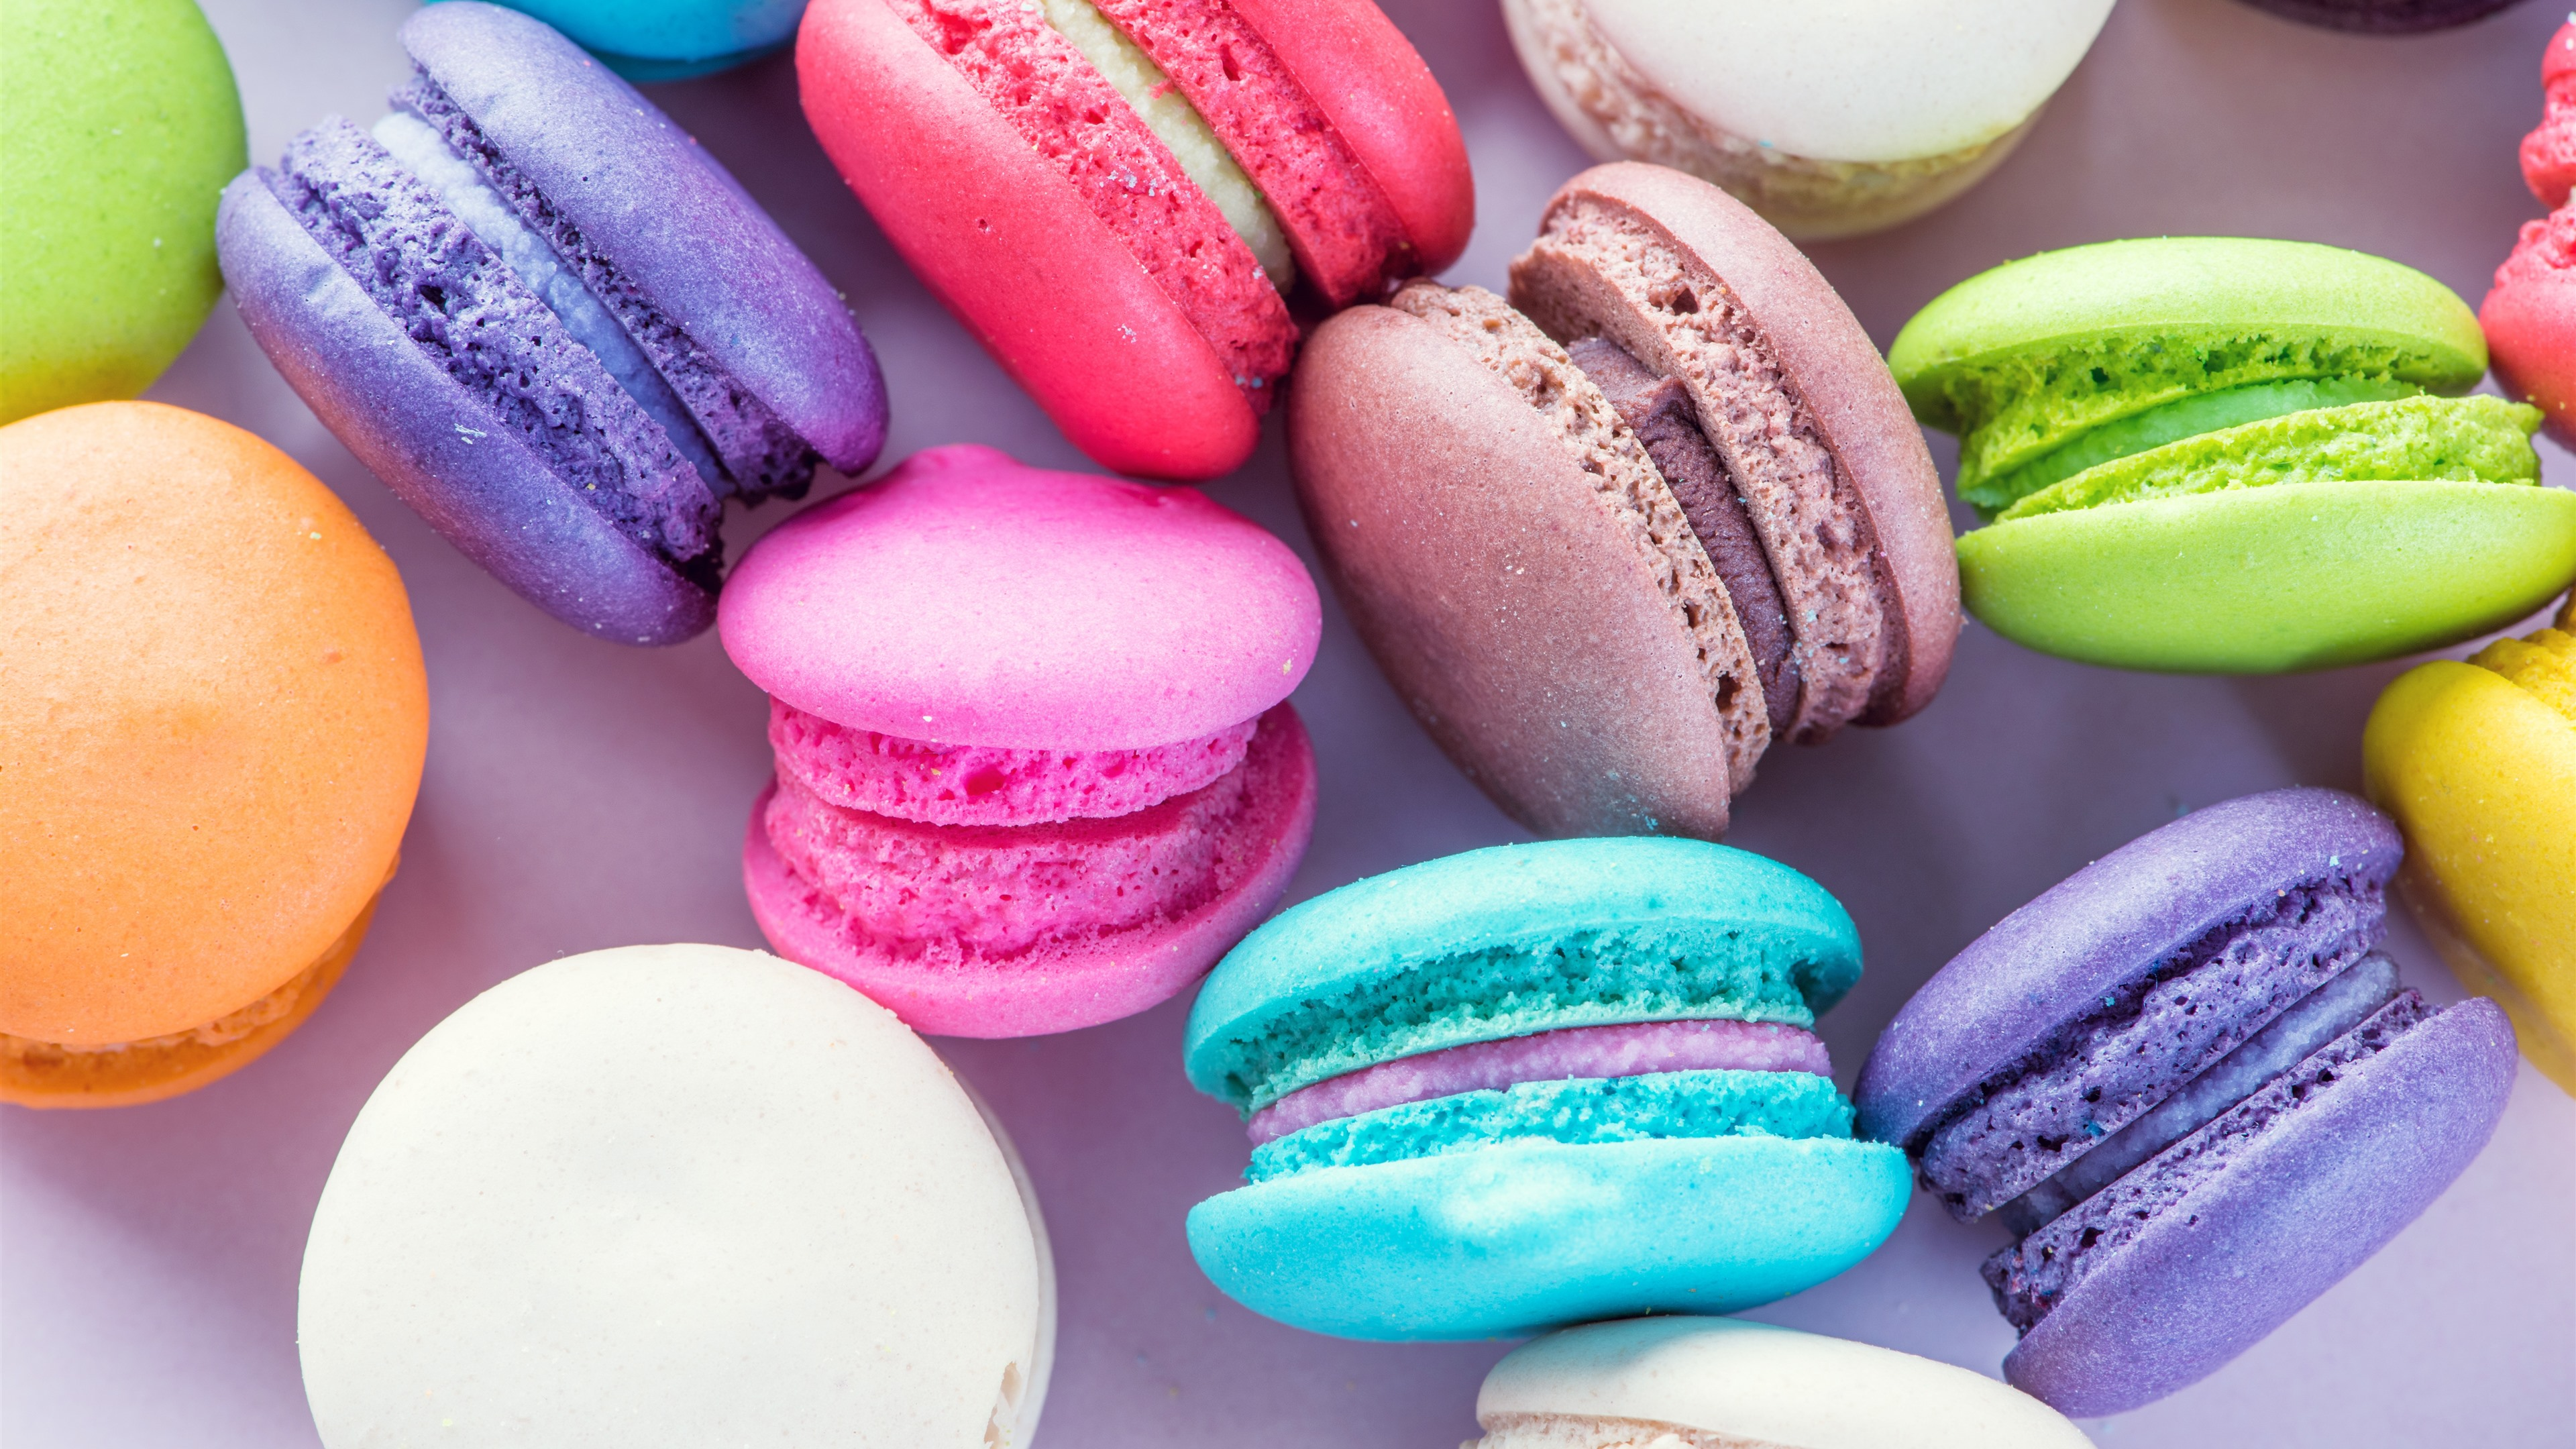 Colorful Food Wallpaper Free Download: Wallpaper Colorful Macaron, Cakes, Sweet Food 5120x2880